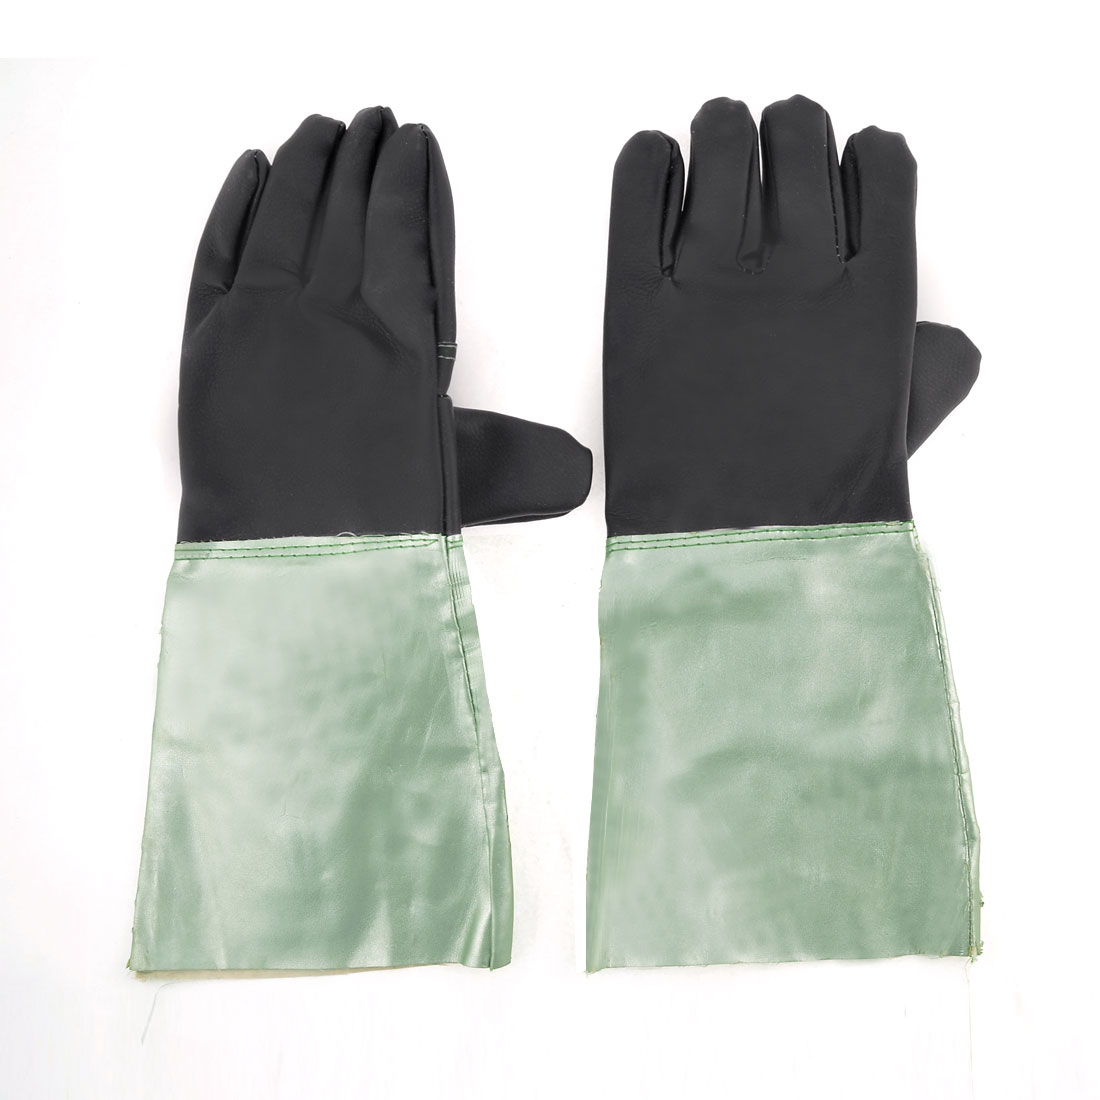 Pair Black Light Green Faux Leather Grill Work Welding Gloves